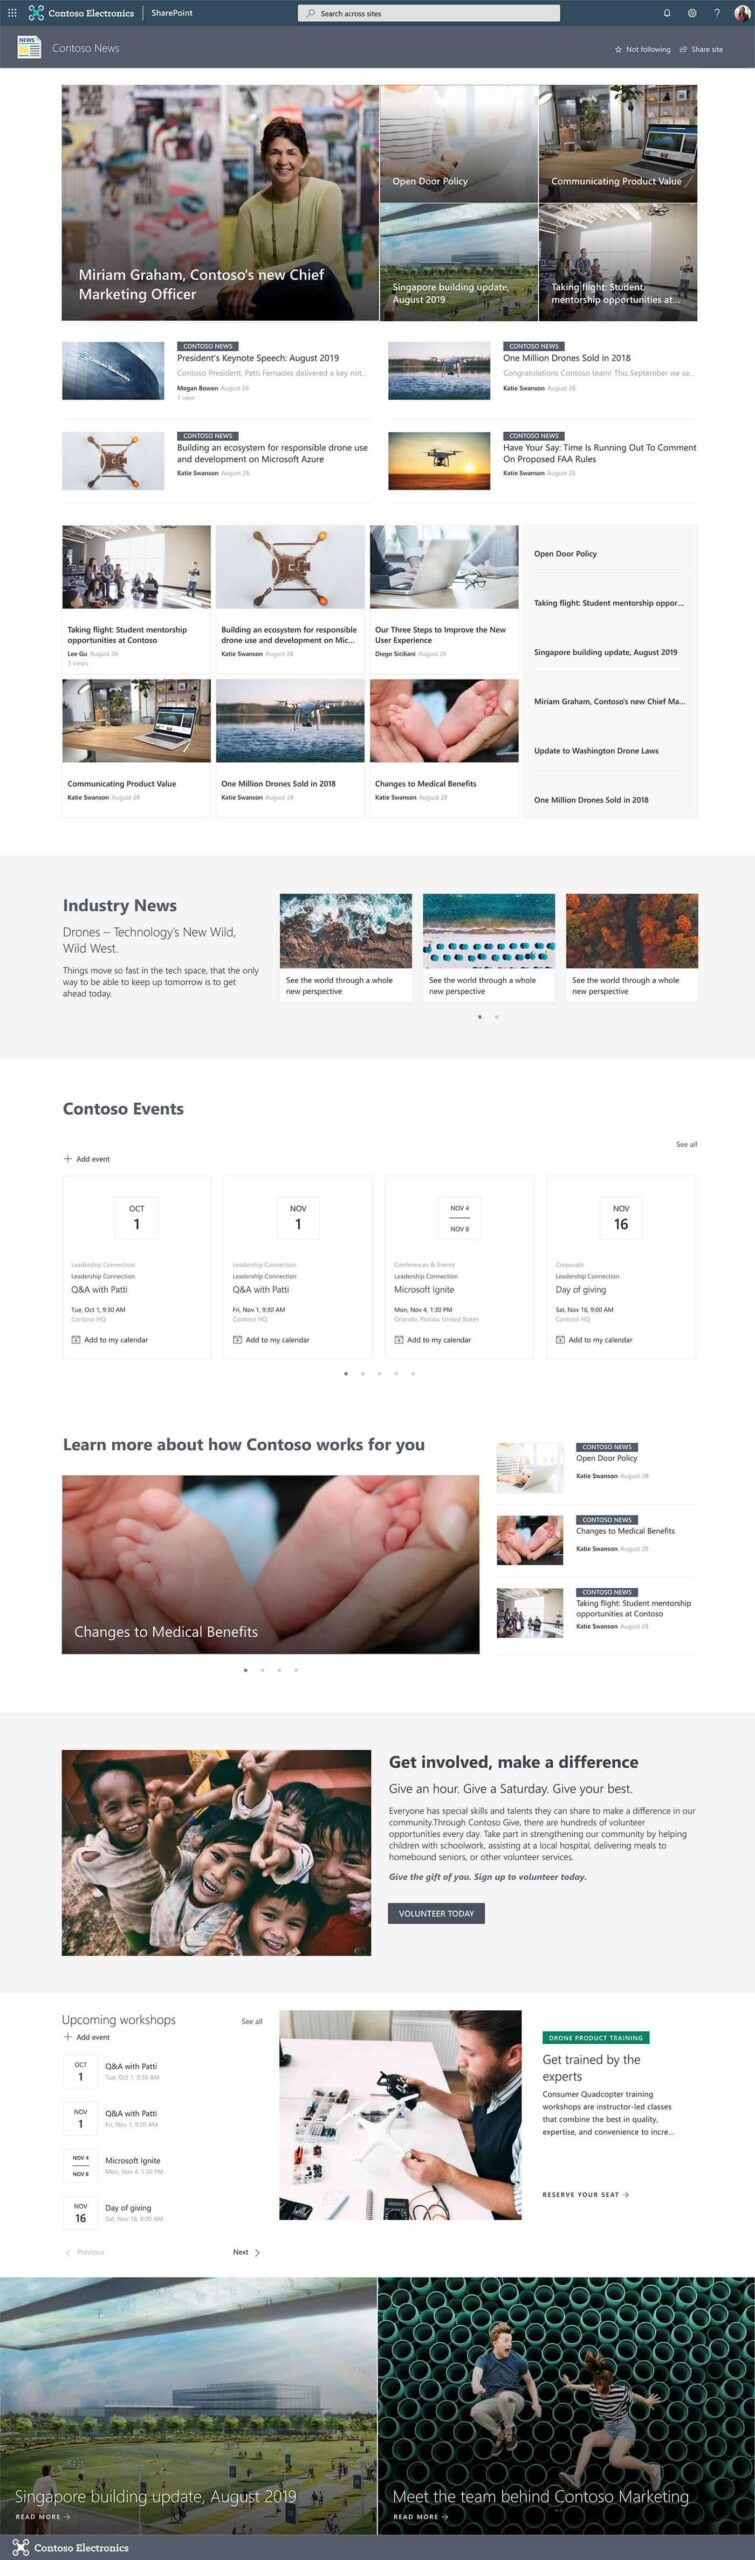 Seventeen Modern Sharepoint Templates For Office 365 Microsoft365 Atwork,Small House Minimalist Kitchen Design For Small Space